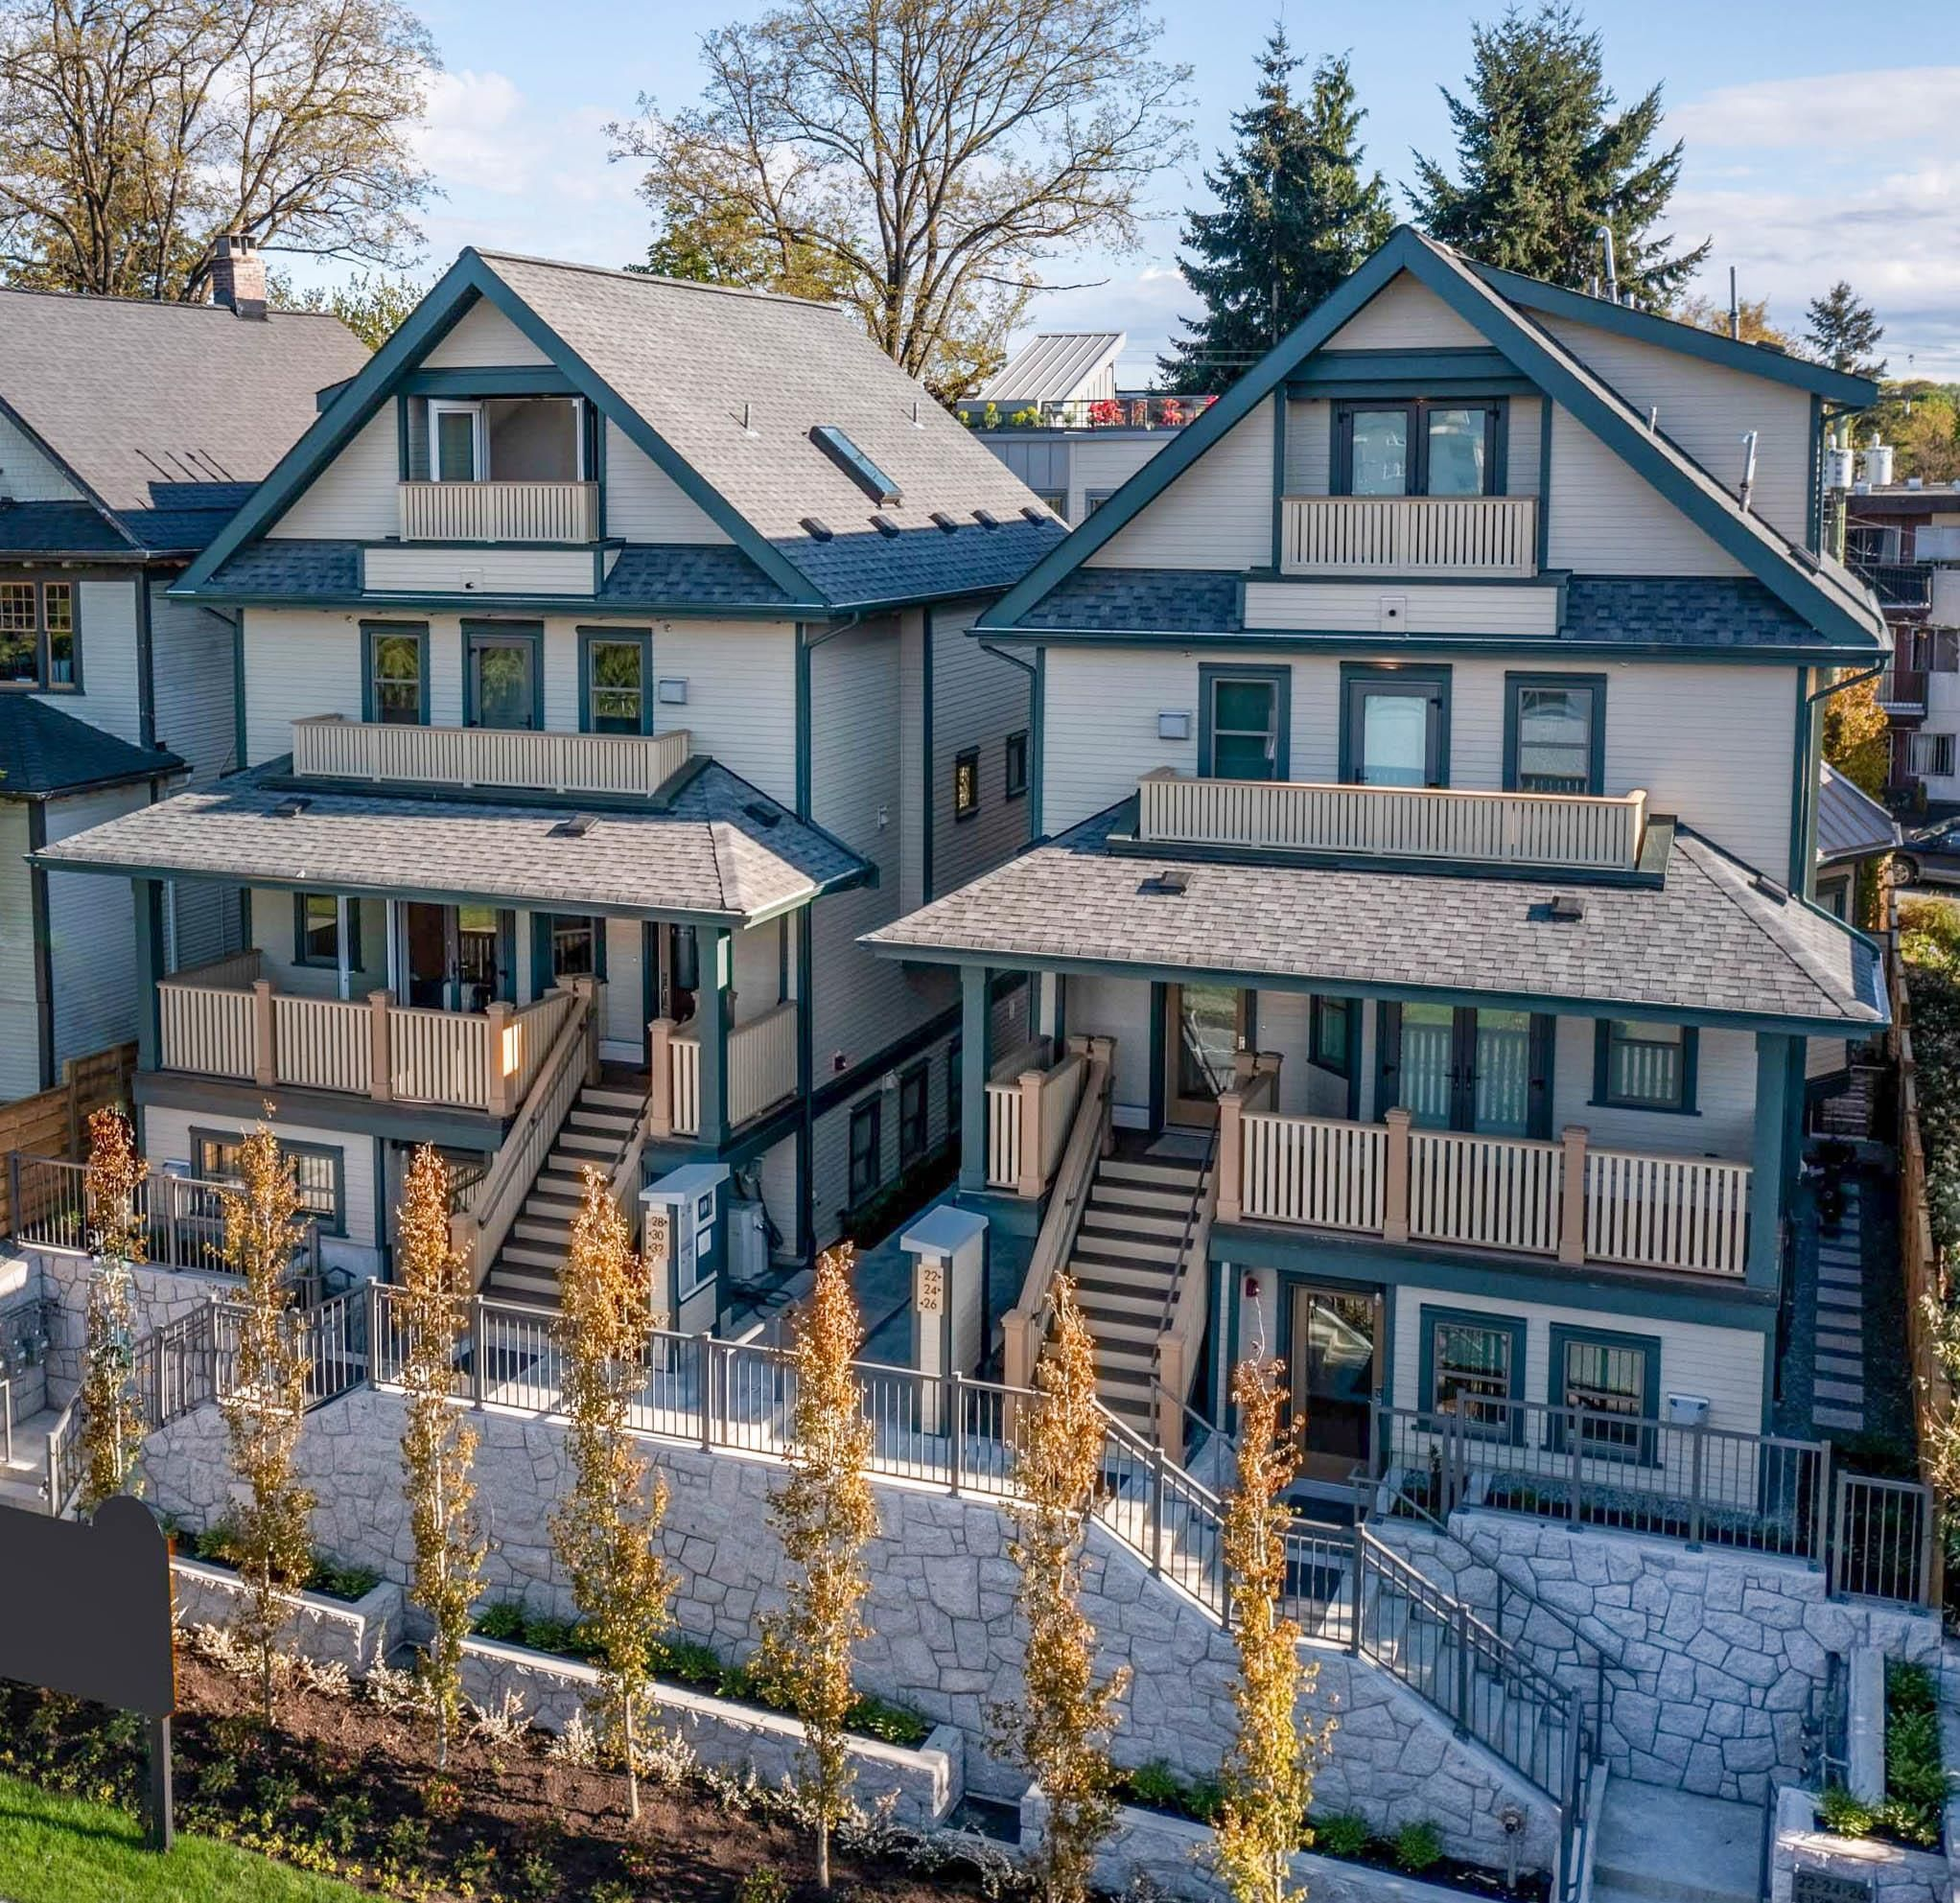 """Main Photo: 30 E 12TH Avenue in Vancouver: Mount Pleasant VE Townhouse for sale in """"West of Main"""" (Vancouver East)  : MLS®# R2617035"""